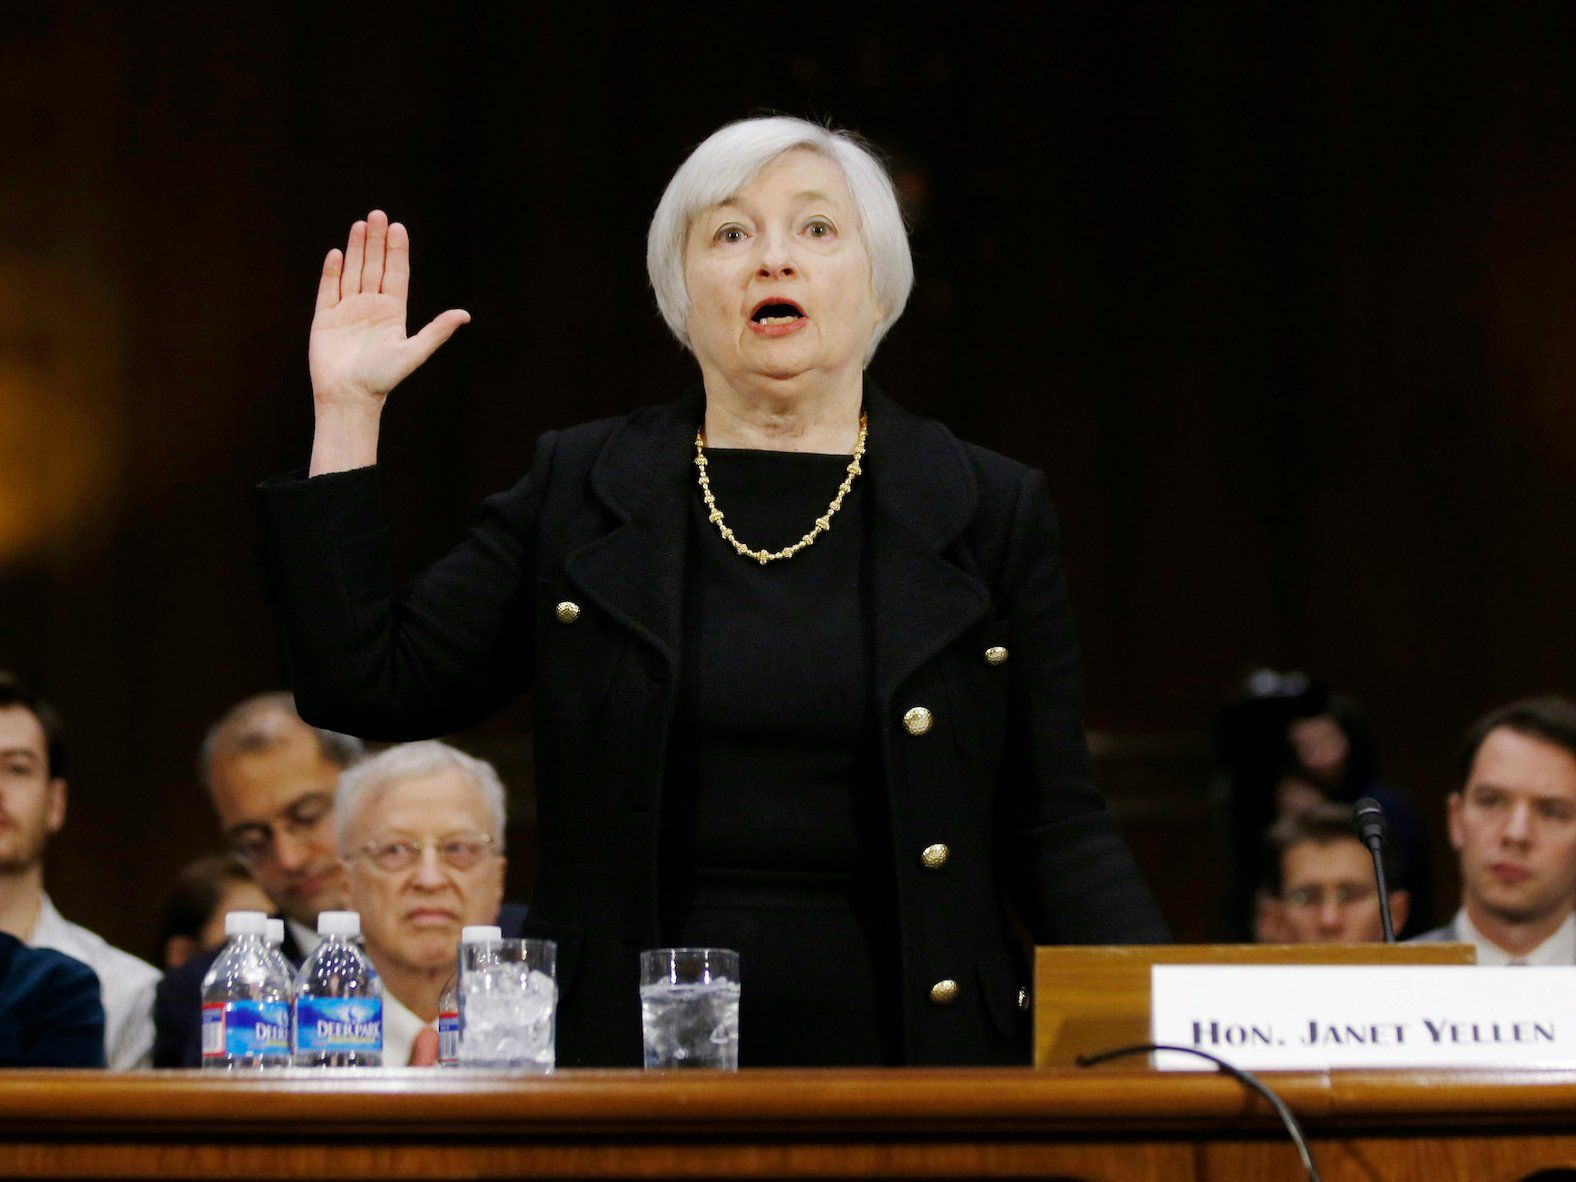 Janet Yellen S Testimony To Senate Banking Committee February 14 Business Insider Janet Yellen Financial Firm Business Insider